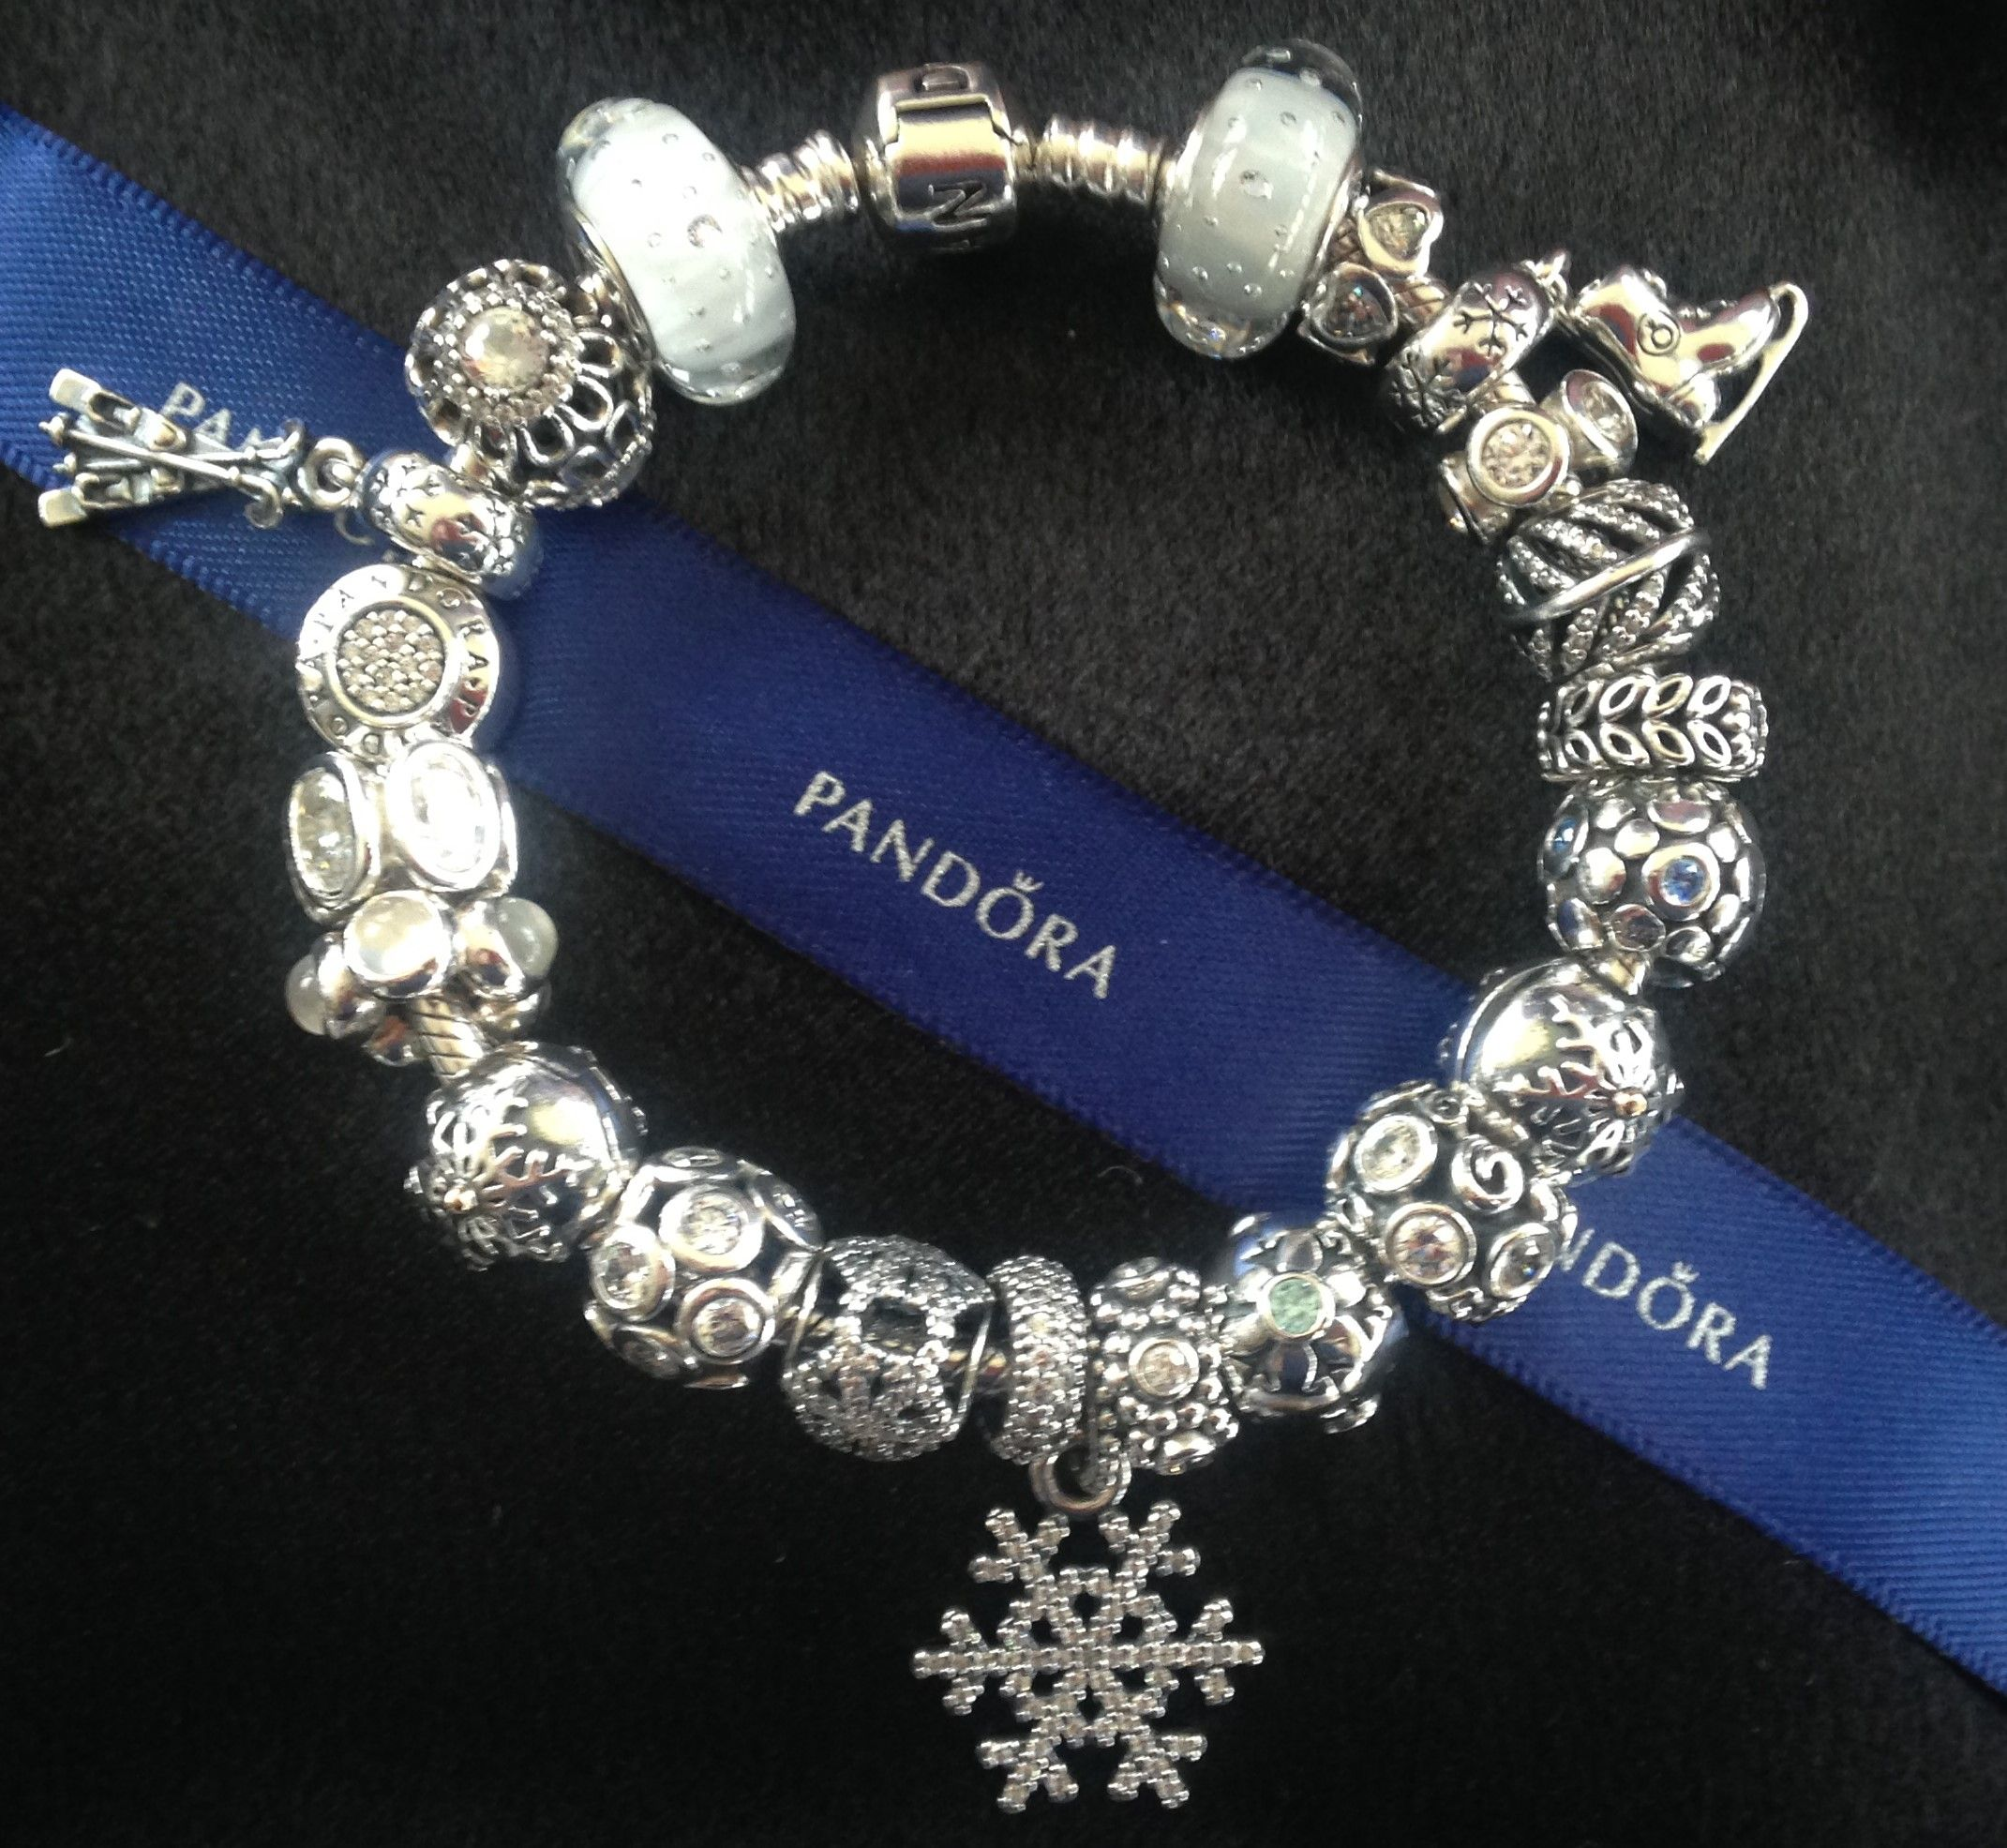 Pandora White Winter 2014-2015 Snowflakes